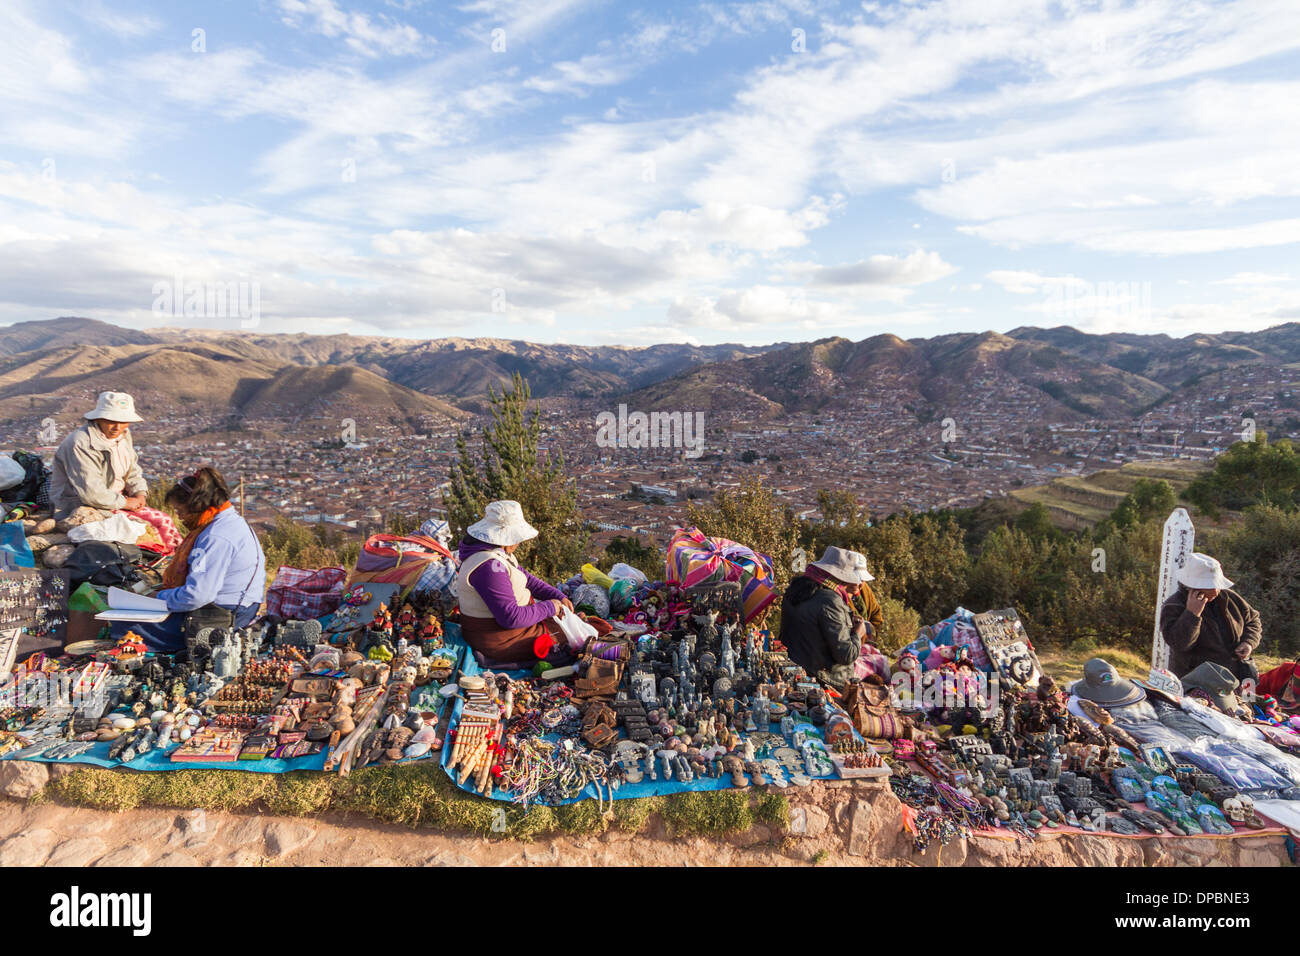 Women selling crafts on a hilltop, the city of cusco (peru) in background - Stock Image